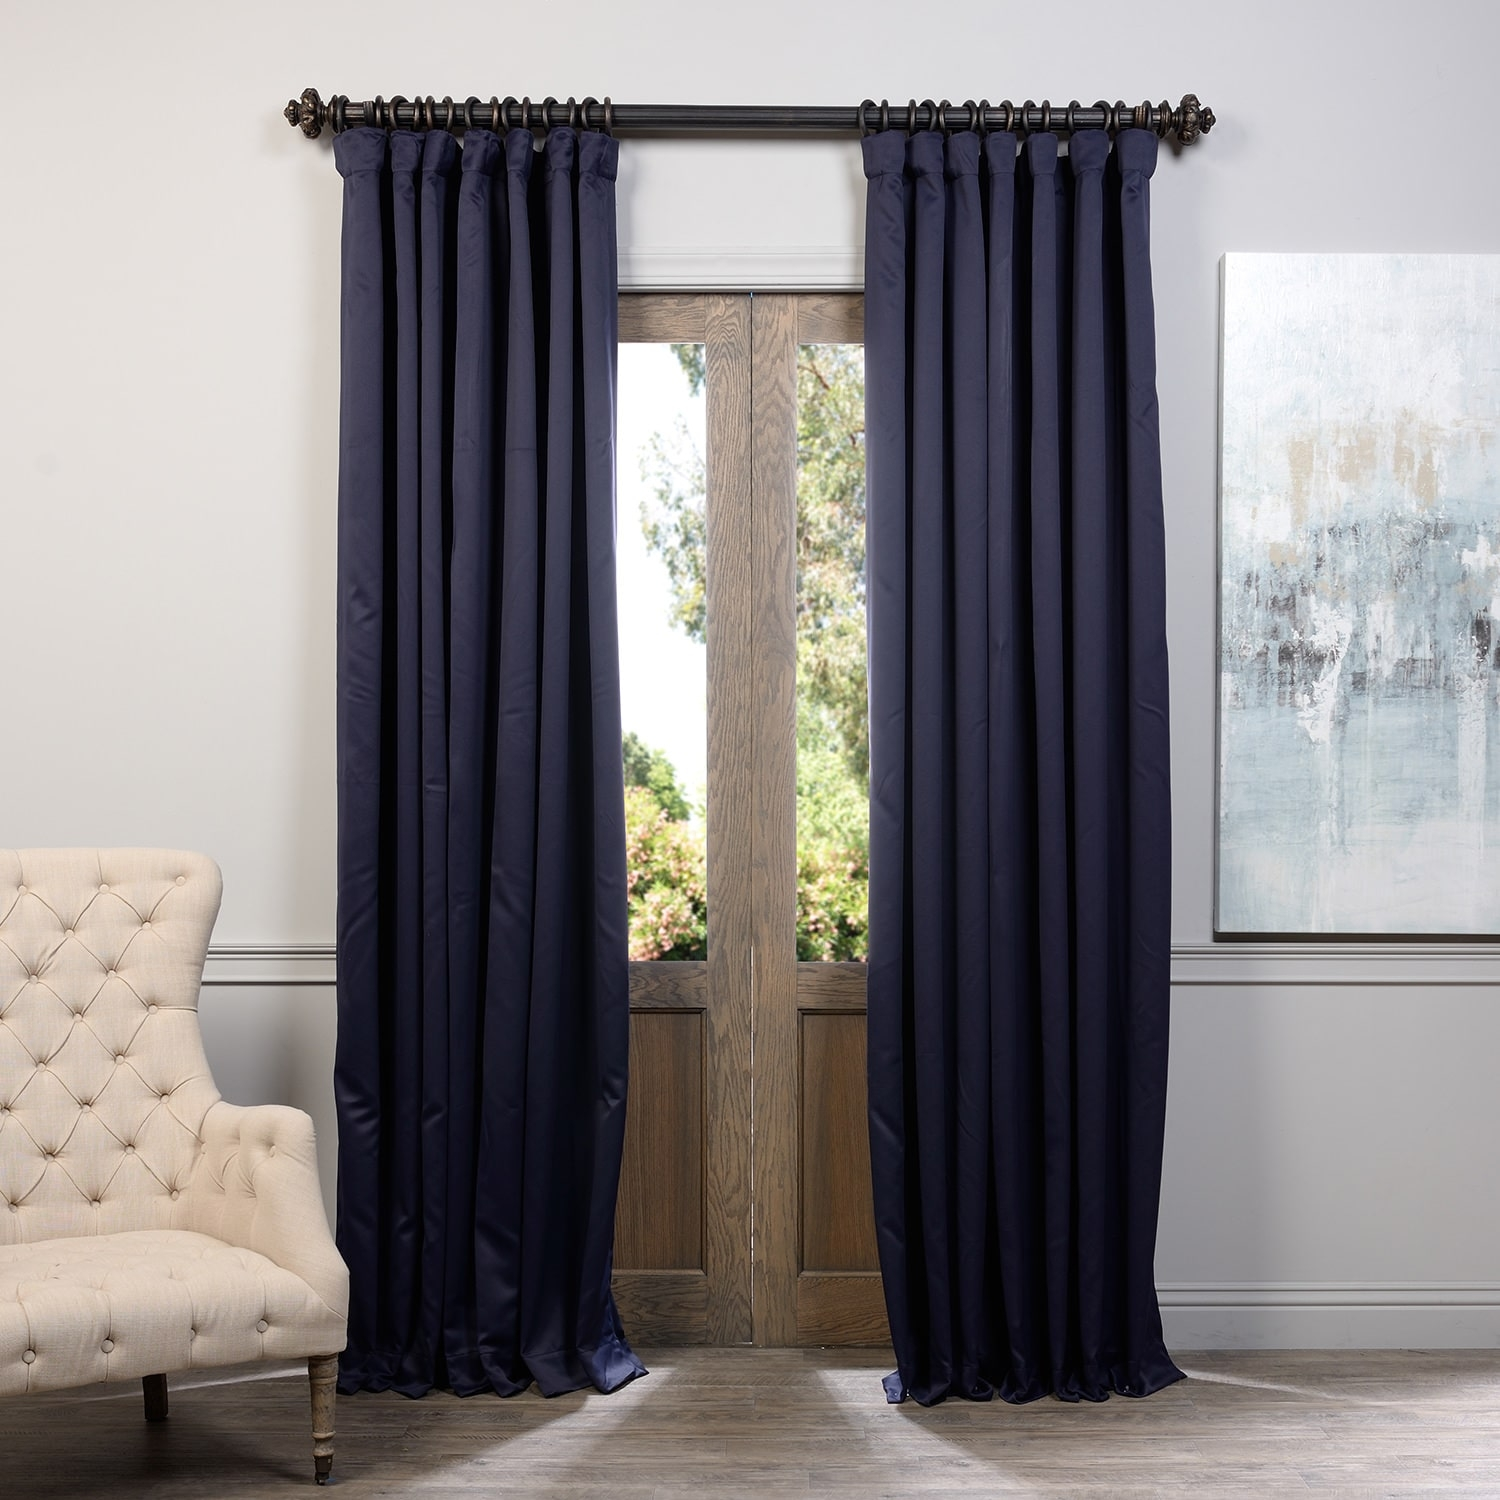 Extraordinary Ideas Blackout Curtains 108 Inches Blackout Curtains With Regard To Extra Wide And Long Curtains (View 8 of 15)